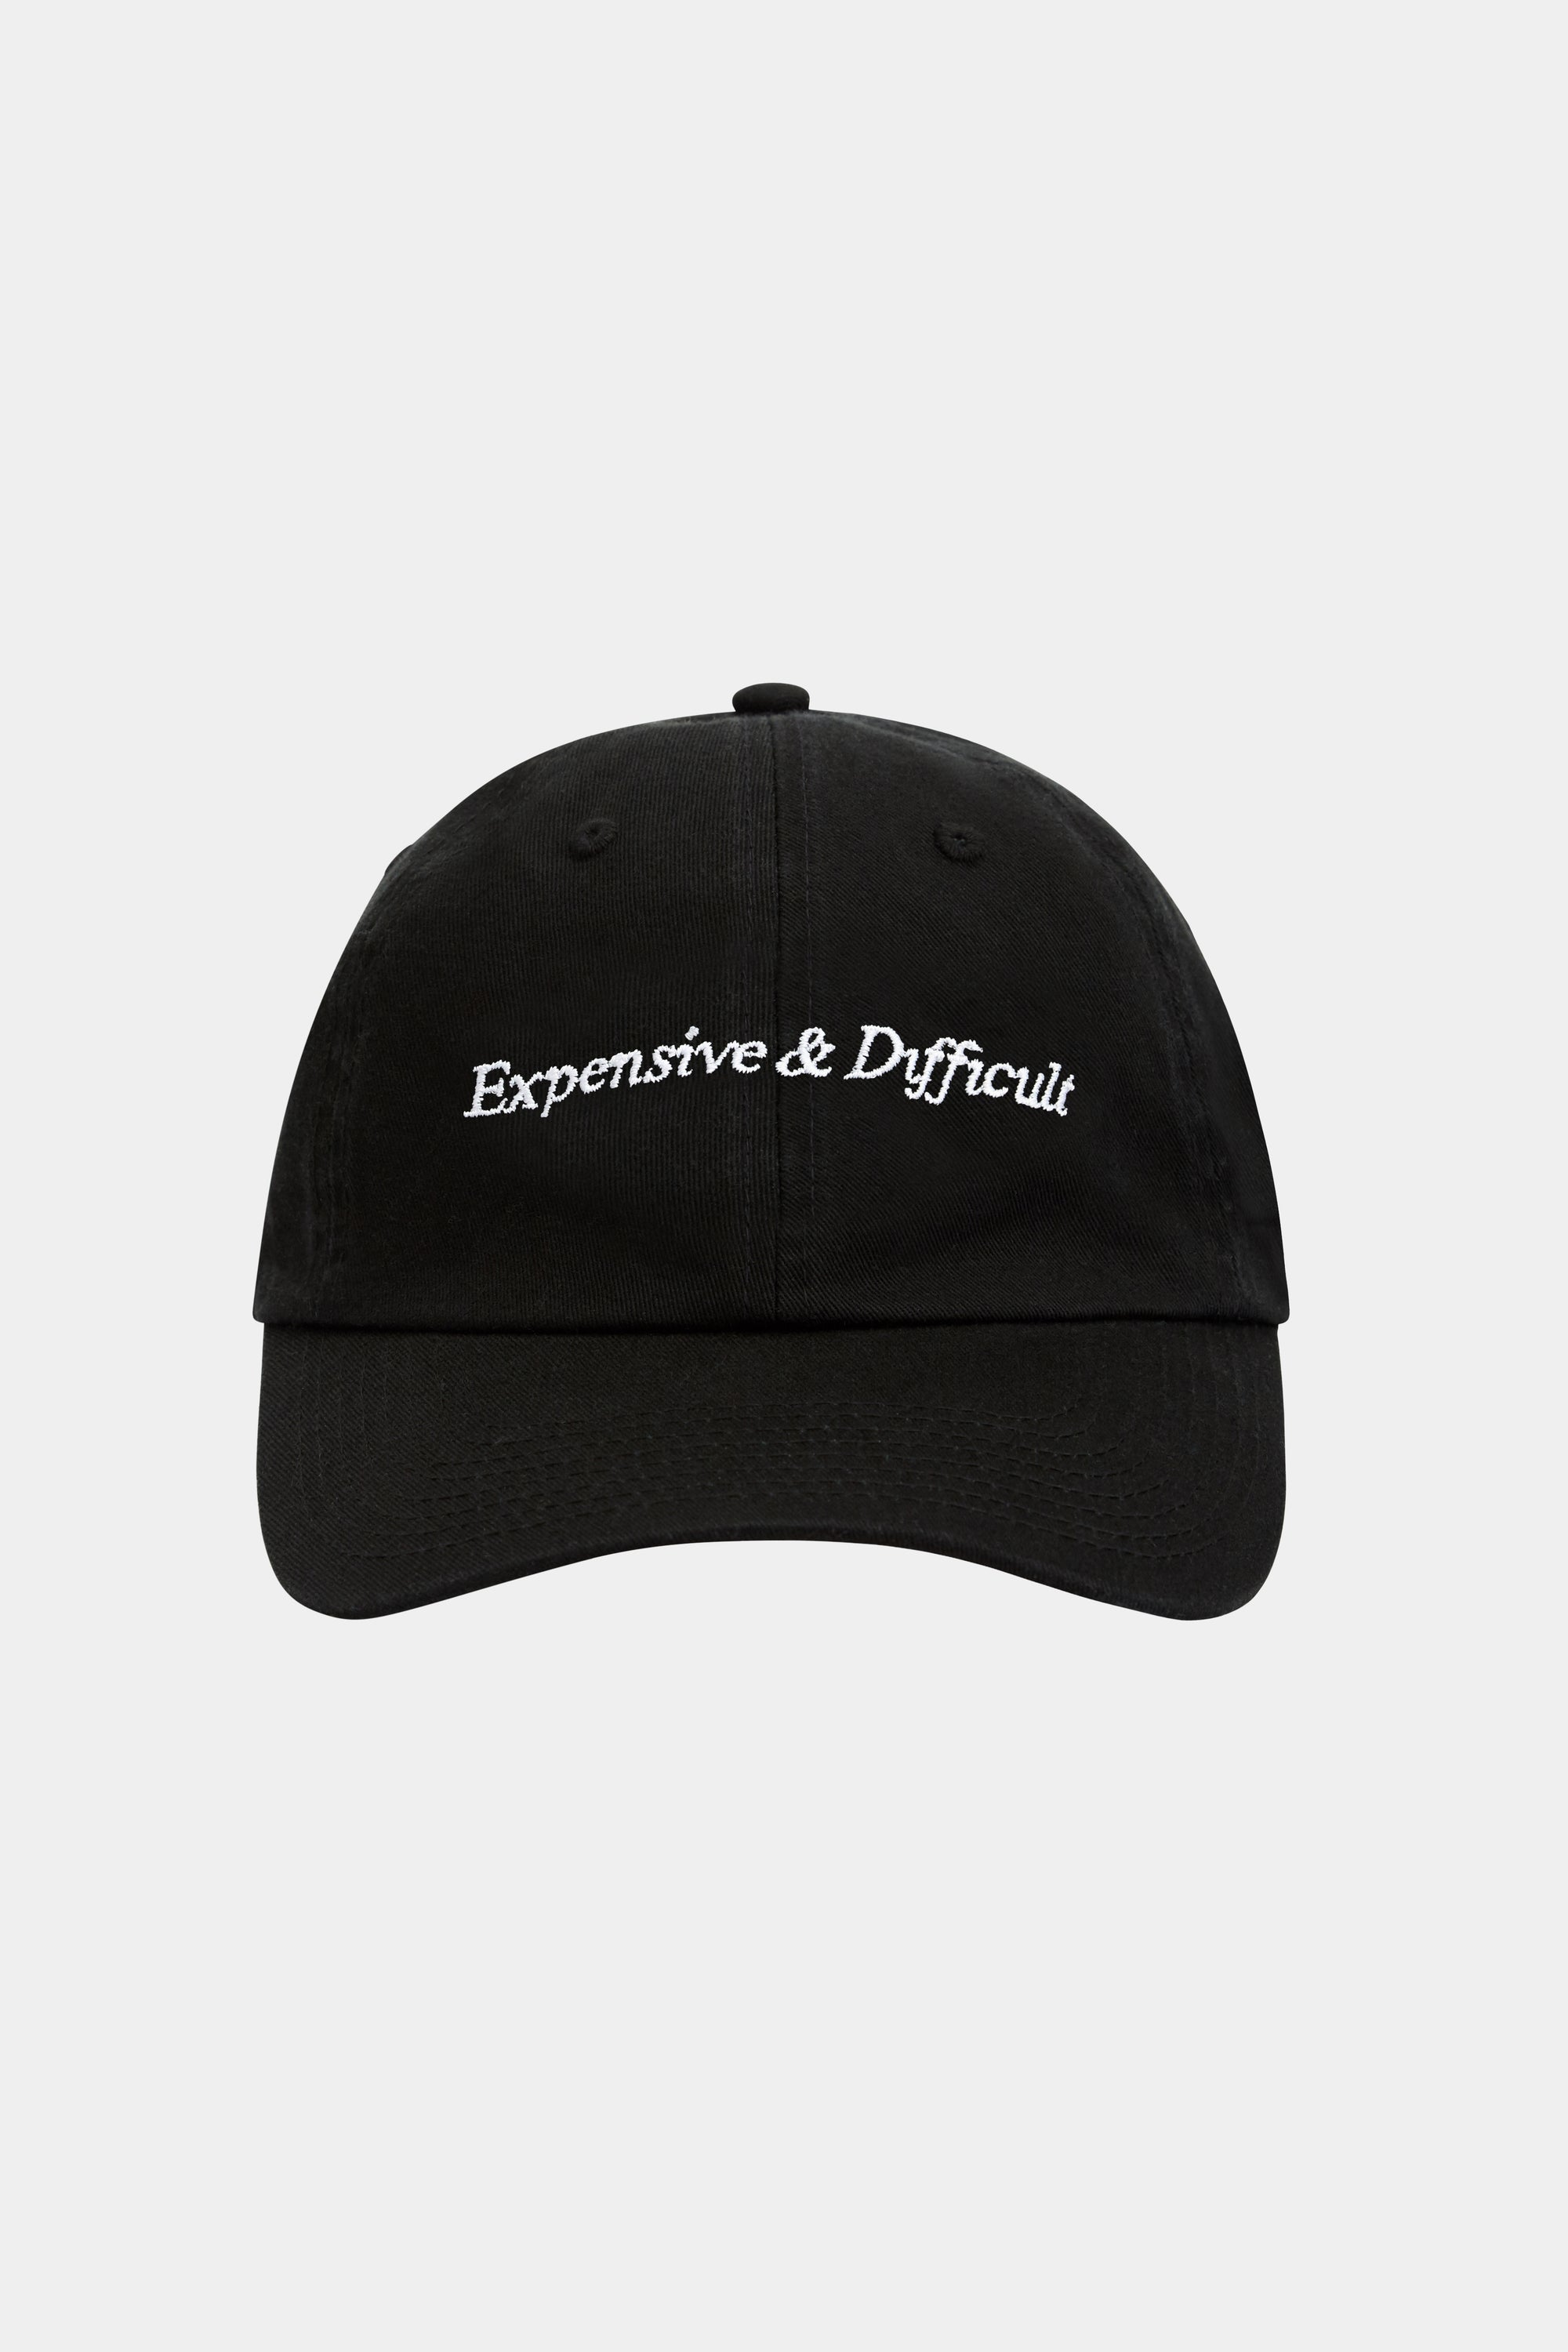 EXPENSIVE & DIFFICULT CAP